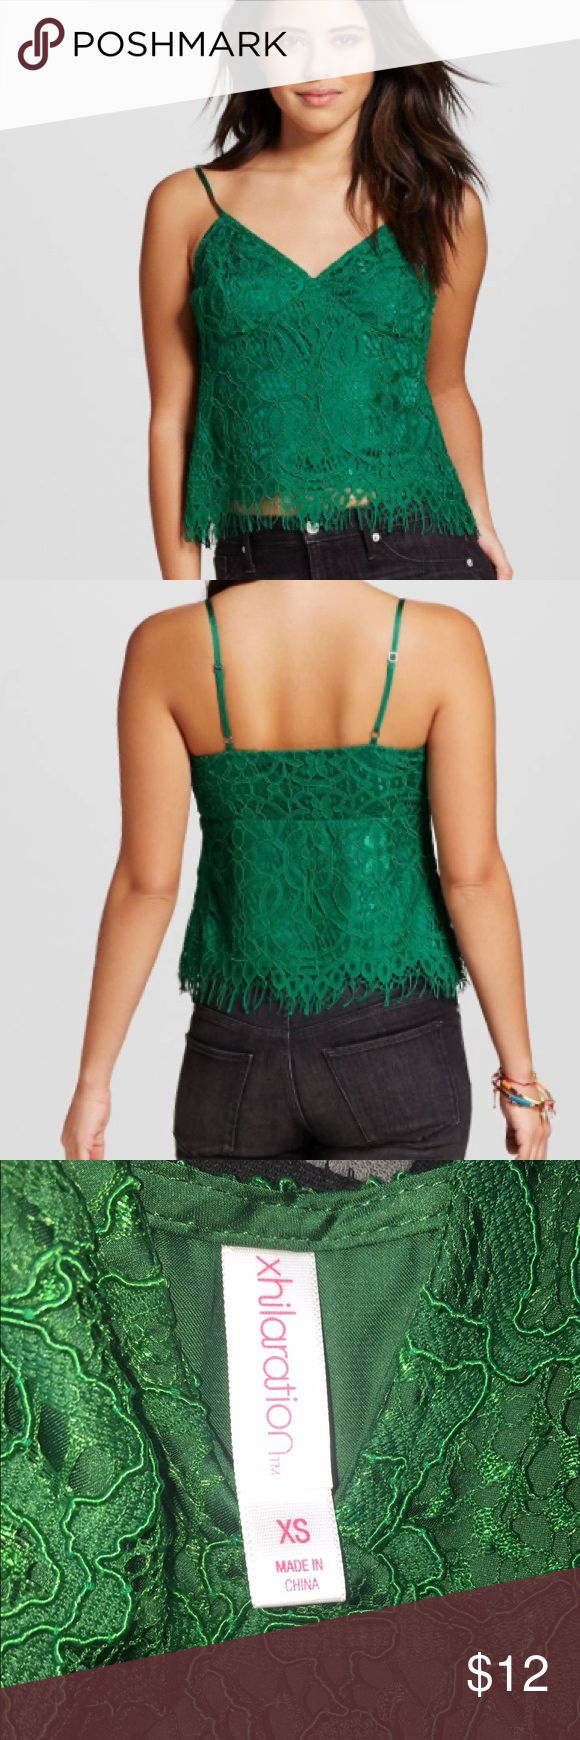 ❤NWT❤ green lace crochet cami. - NWT, size extra small lace green crochet cami❤ Xhilaration Tops Camisoles